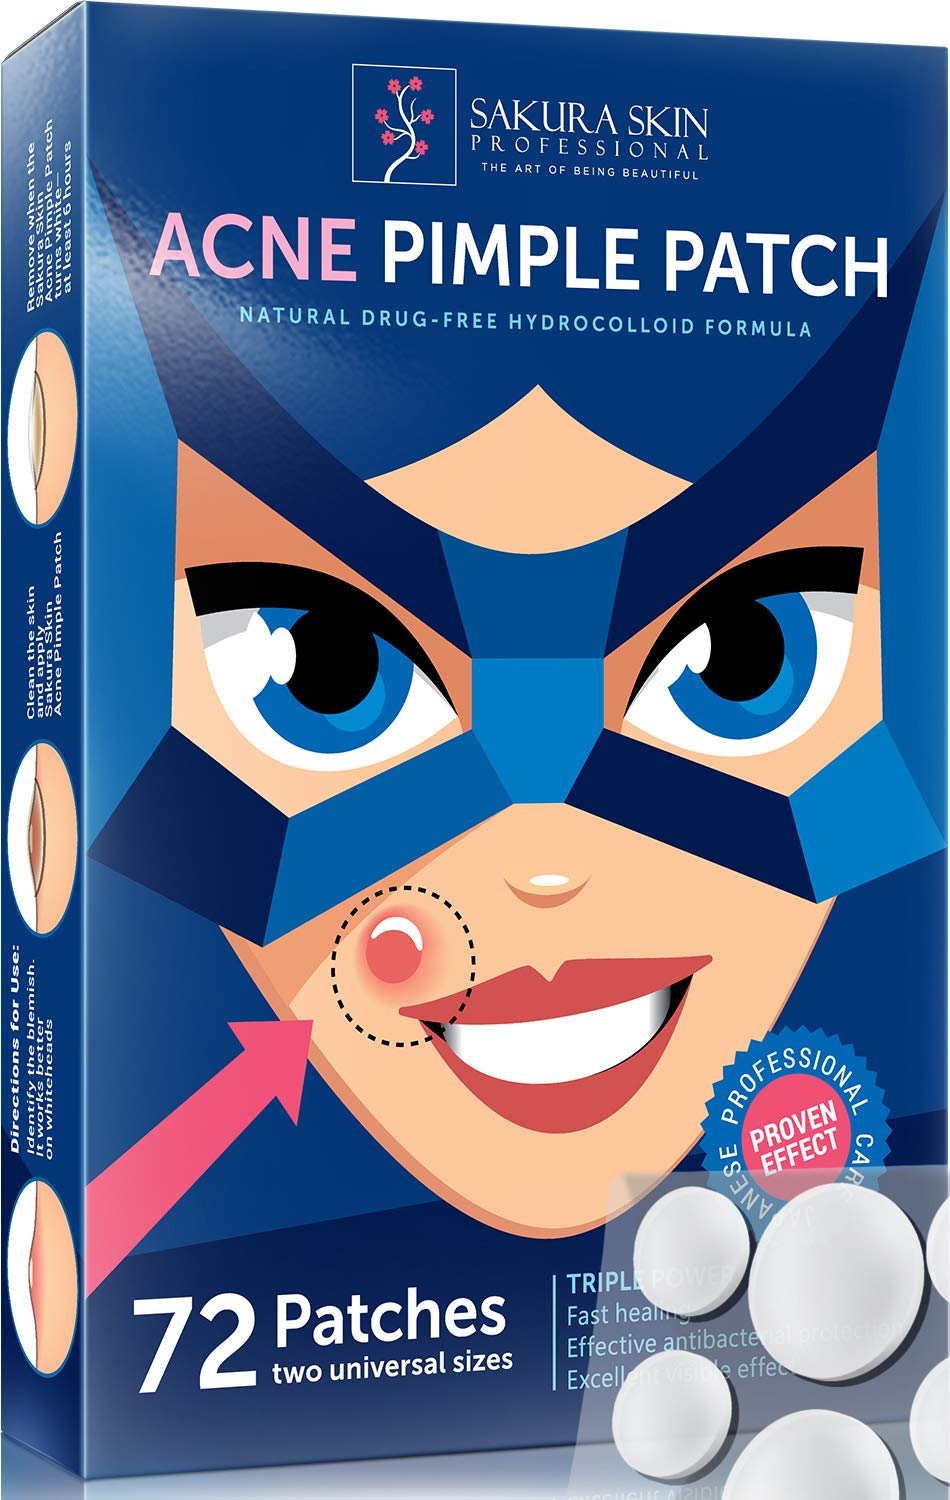 Acne Patch Pimple Patch Hydrocolloid Acne Stickers Absorbing Spot Dot Acne Cover 72 Acne Dots Pimple Sticker Acne Pimple Master Patch Blemish Patches